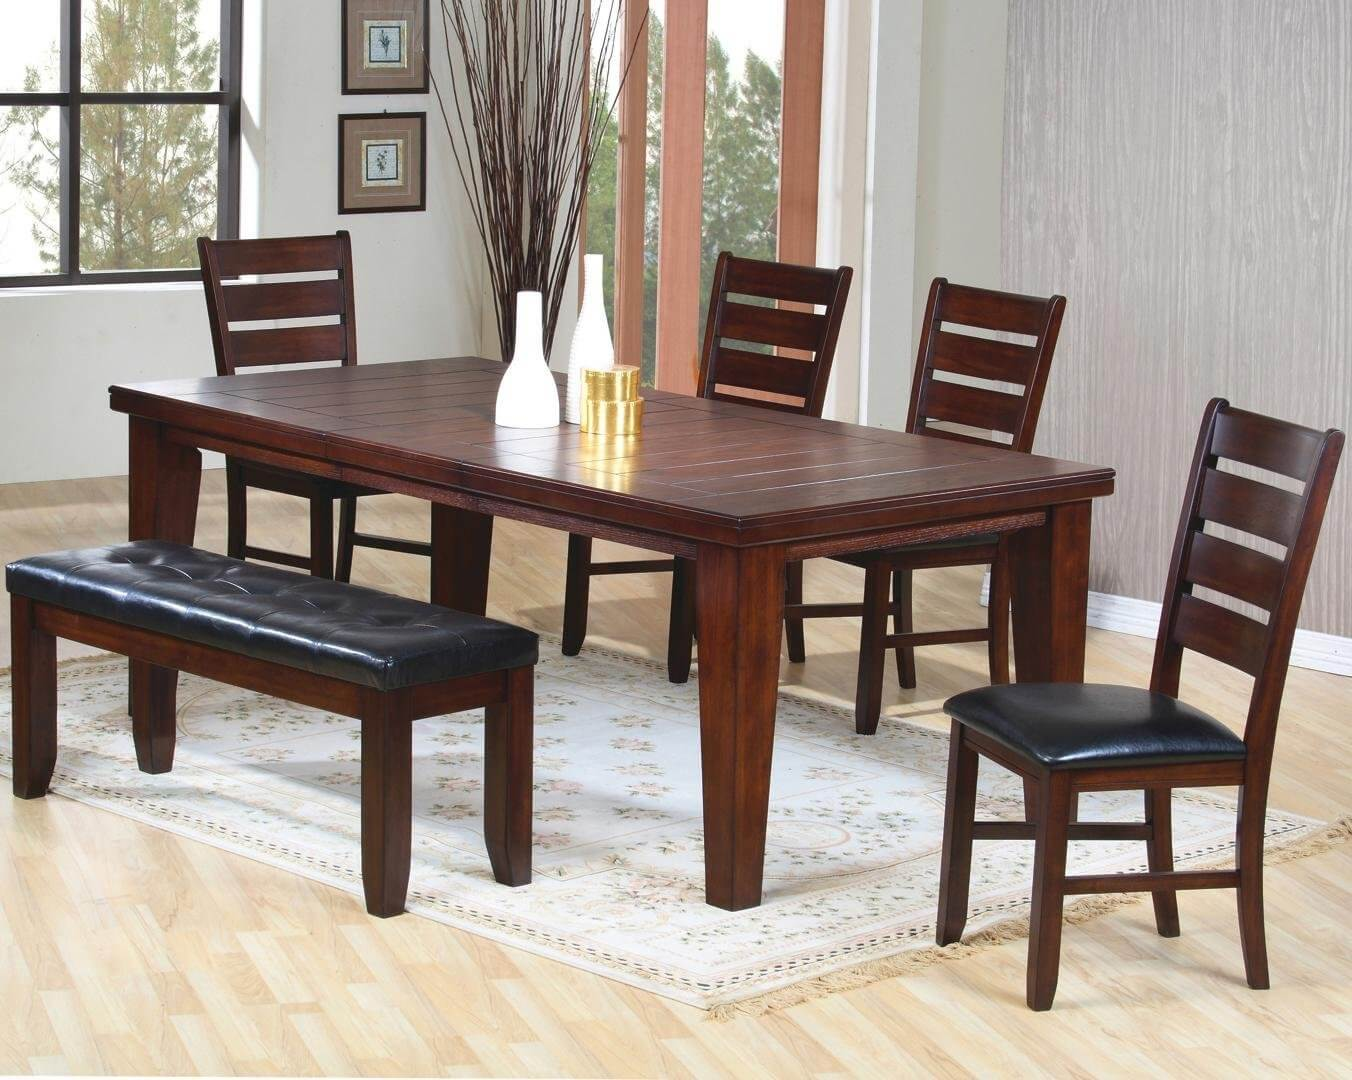 dining room table with bench ... stylish idea black dining room set with bench 15 26 big small shqouru